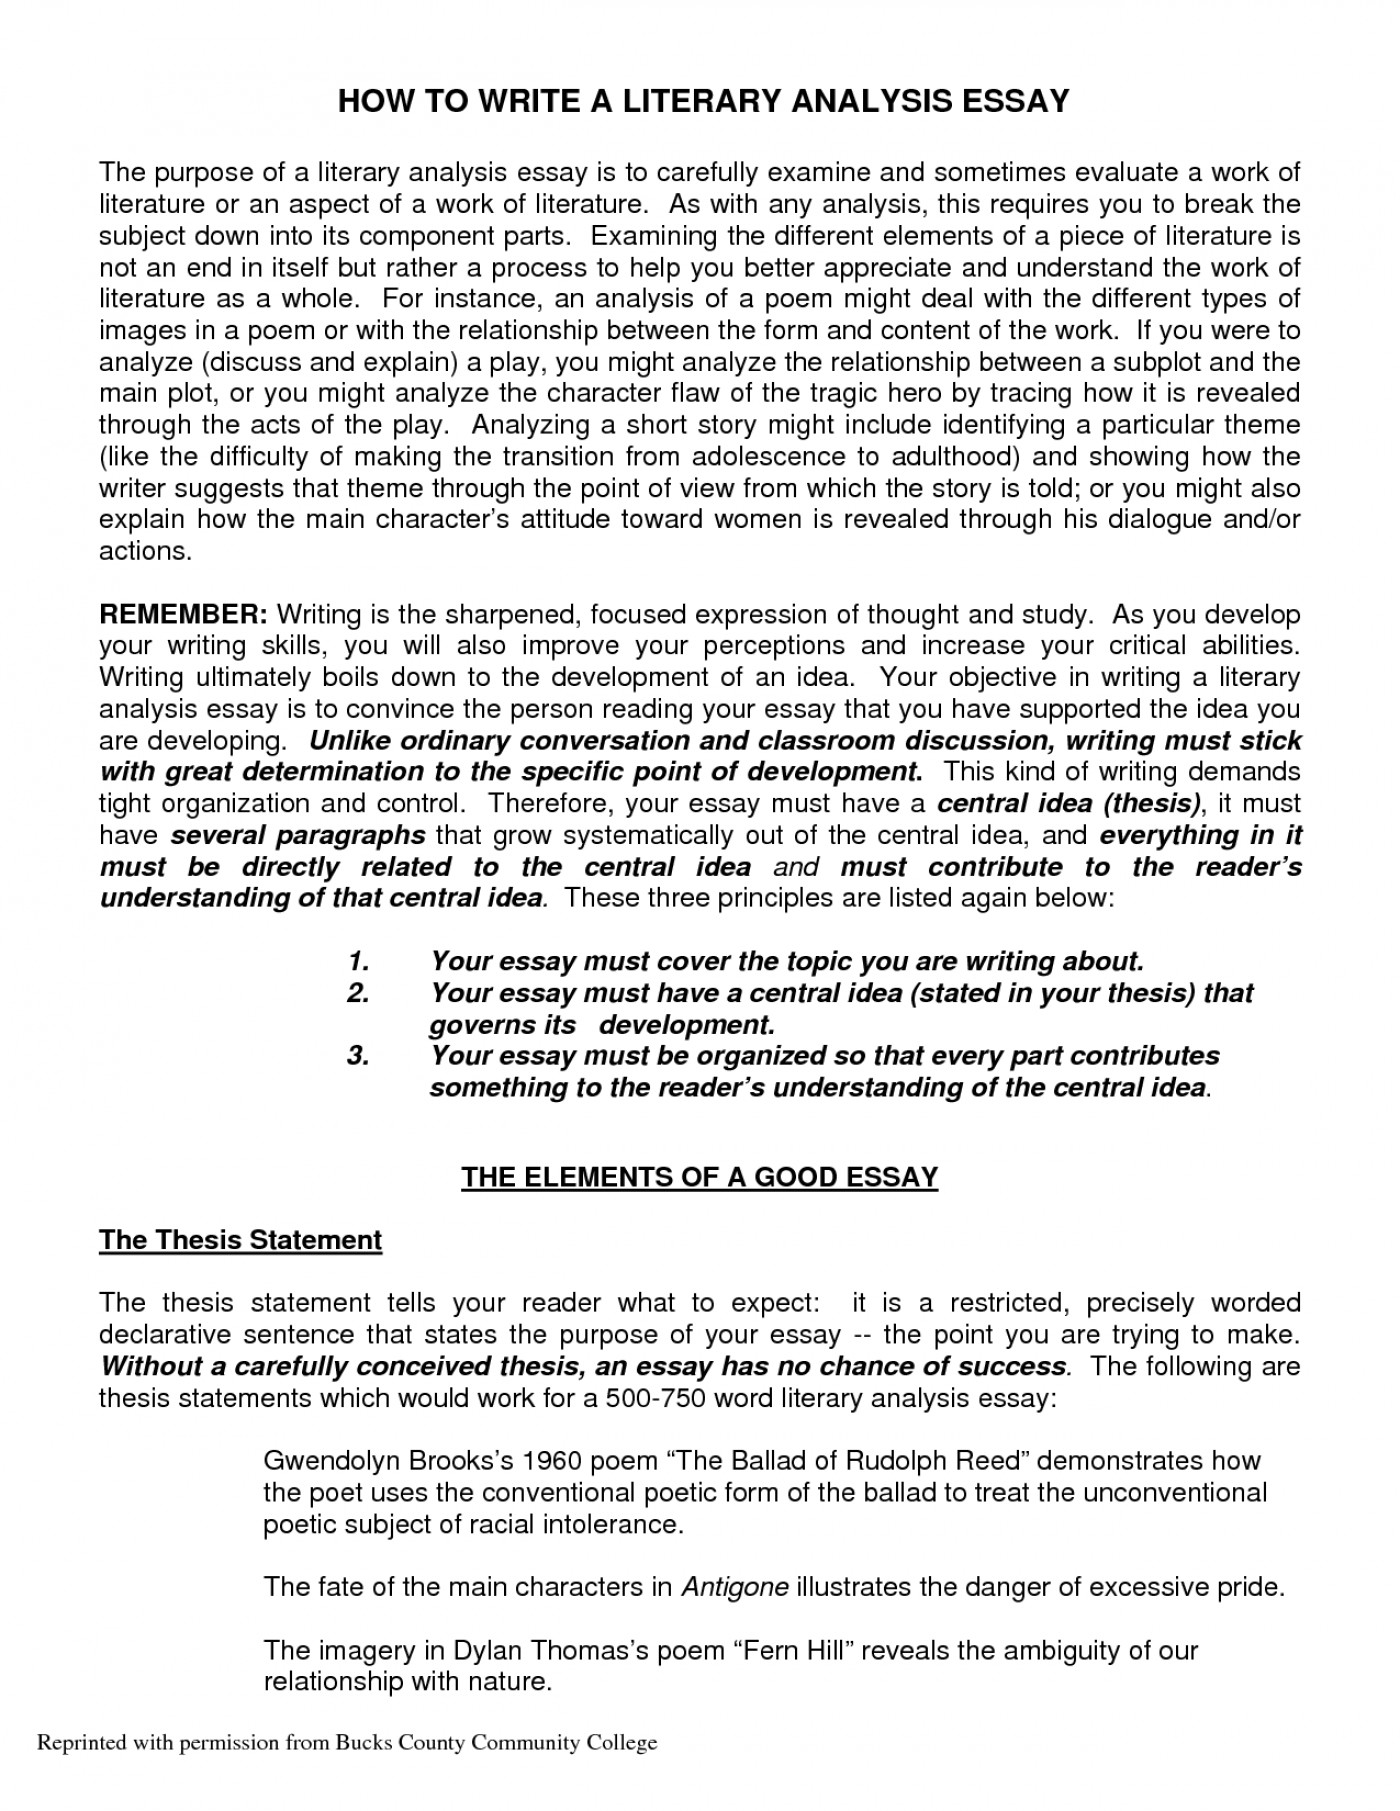 003 Awesome Collection Of Ideas Example Literary Essaylso Format Sample Huanyii Fancy Critical How To Write Formidable A Essay Good English Literature Introduction Conclusion Grade 4 1400